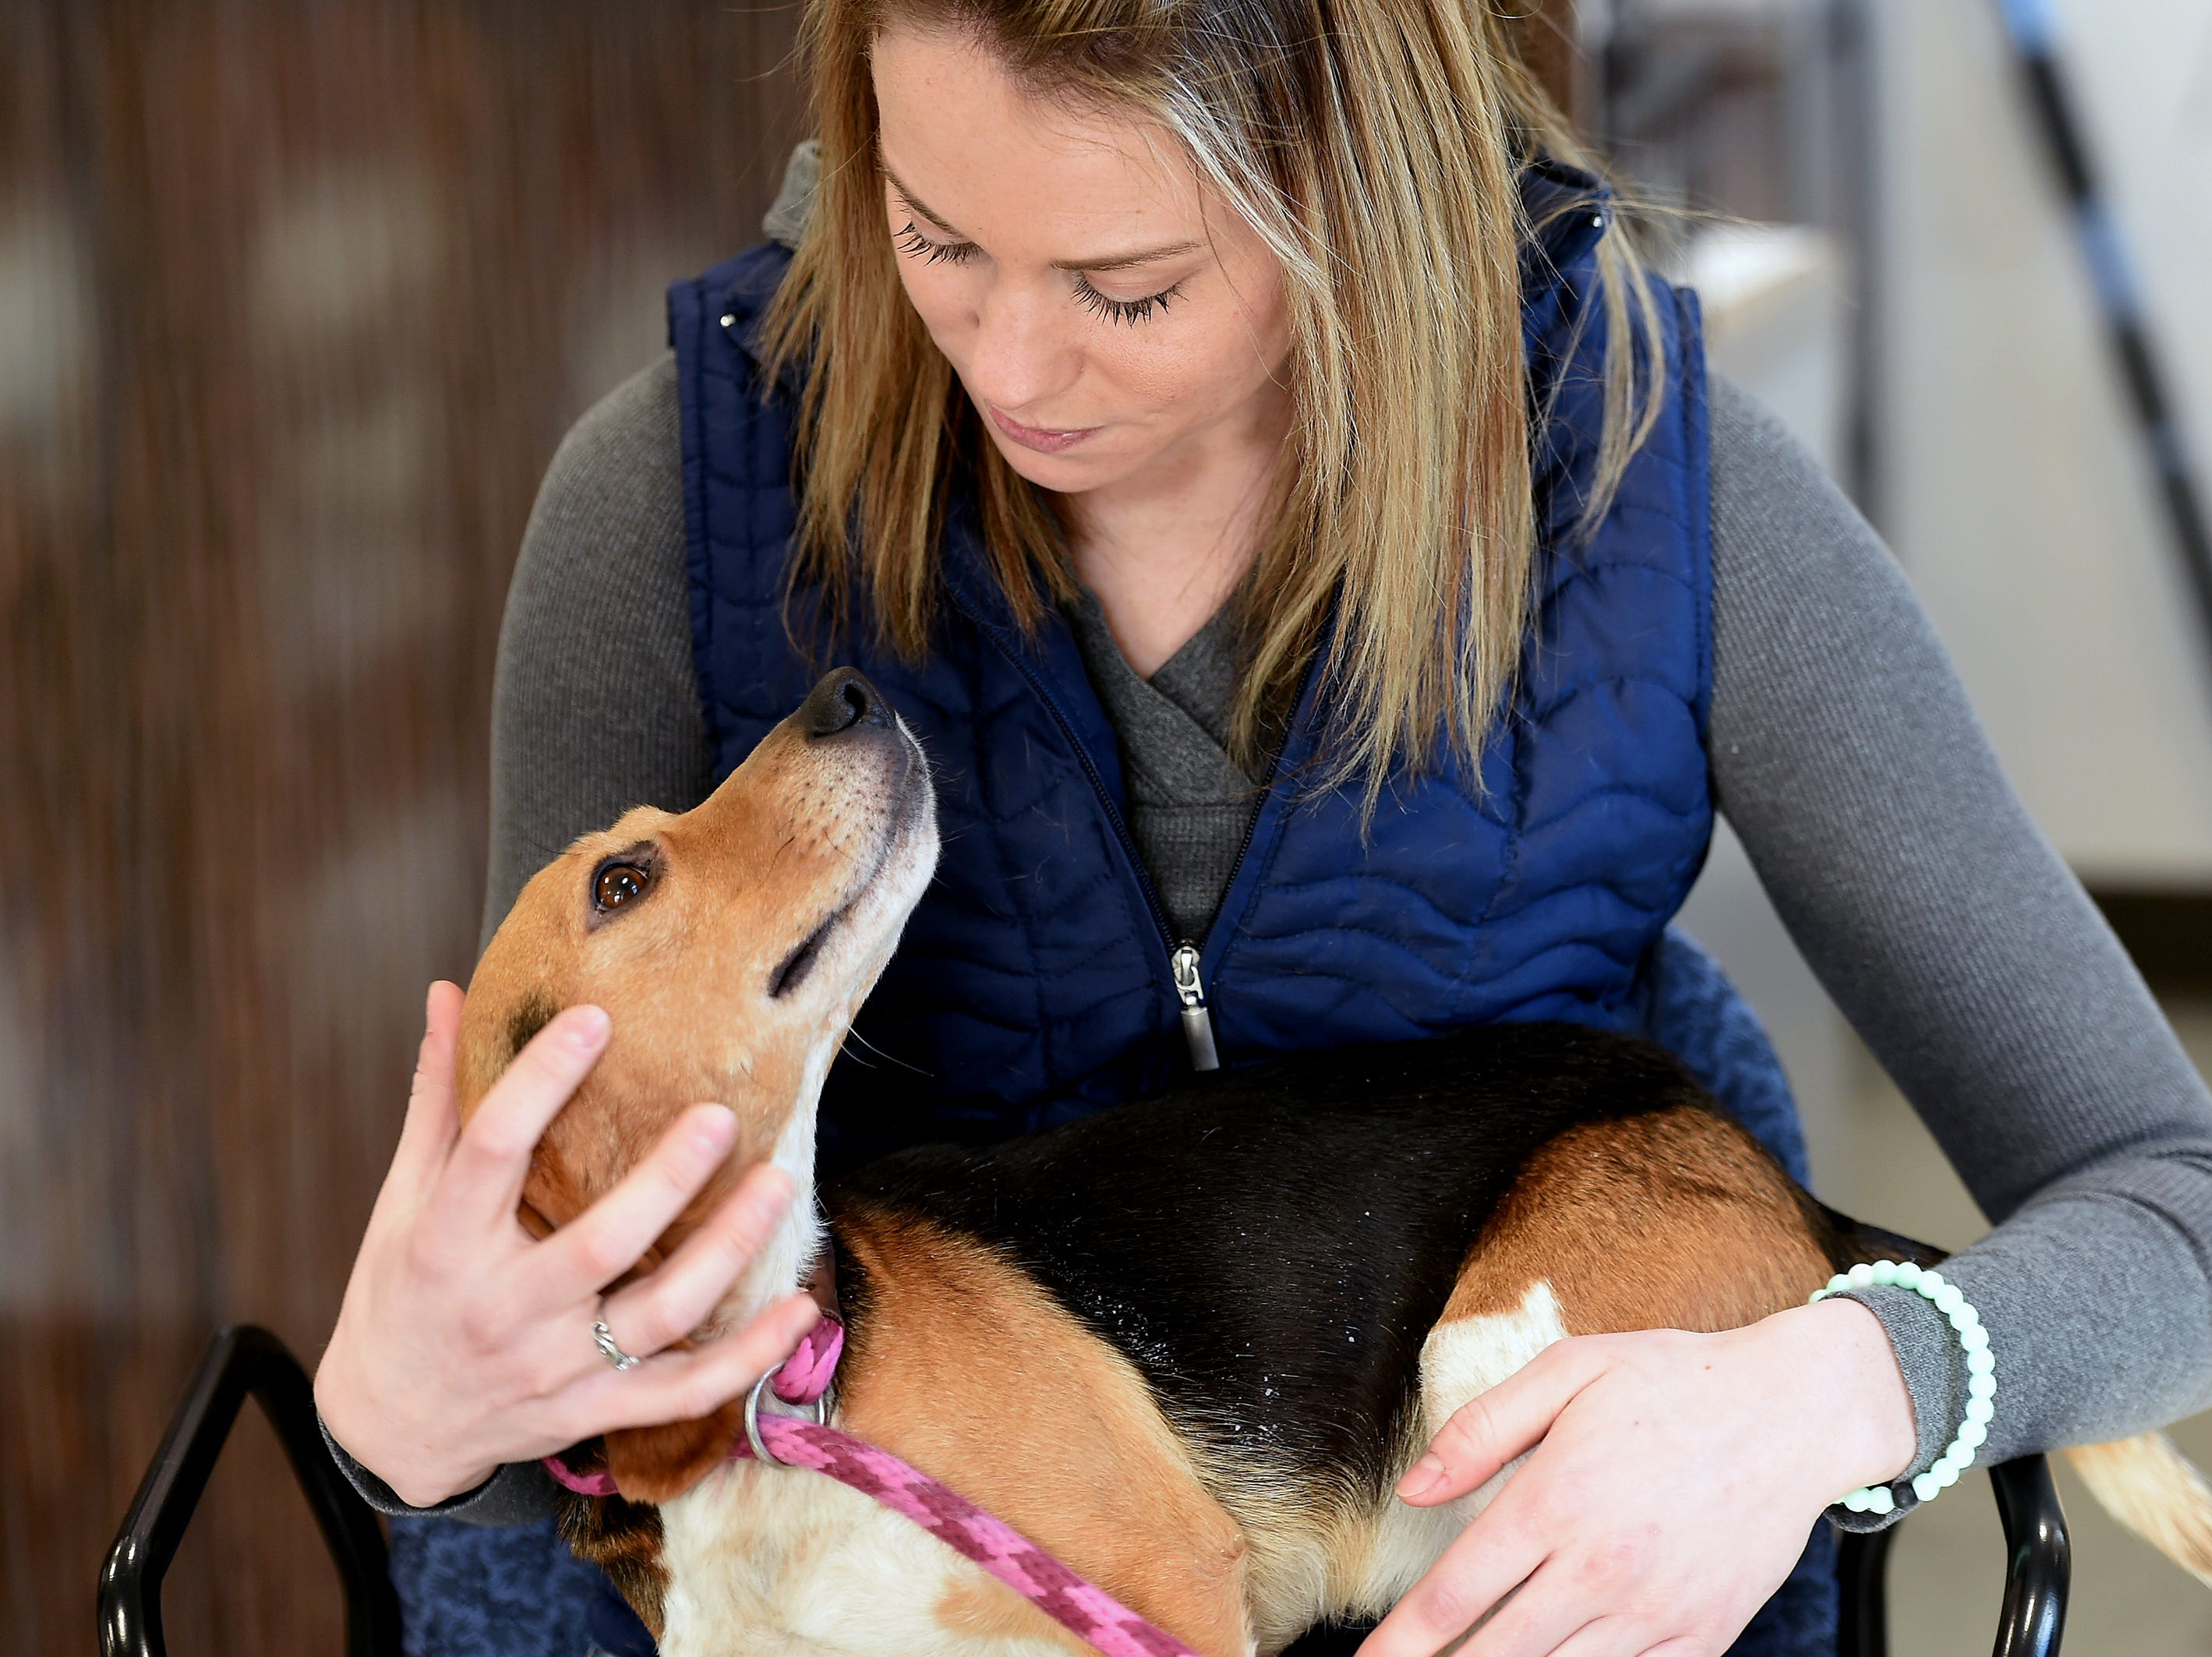 Amberly Ondria, Shelter Manager of the Broome County Humane Society, cradles beagle Adam in her lap. Adam and Trooper were thrown from a vehicle on I-81 in December. The pair was rescued by a truck driver and a state trooper and are being cared for at the Binghamton shelter. January 11, 2019.